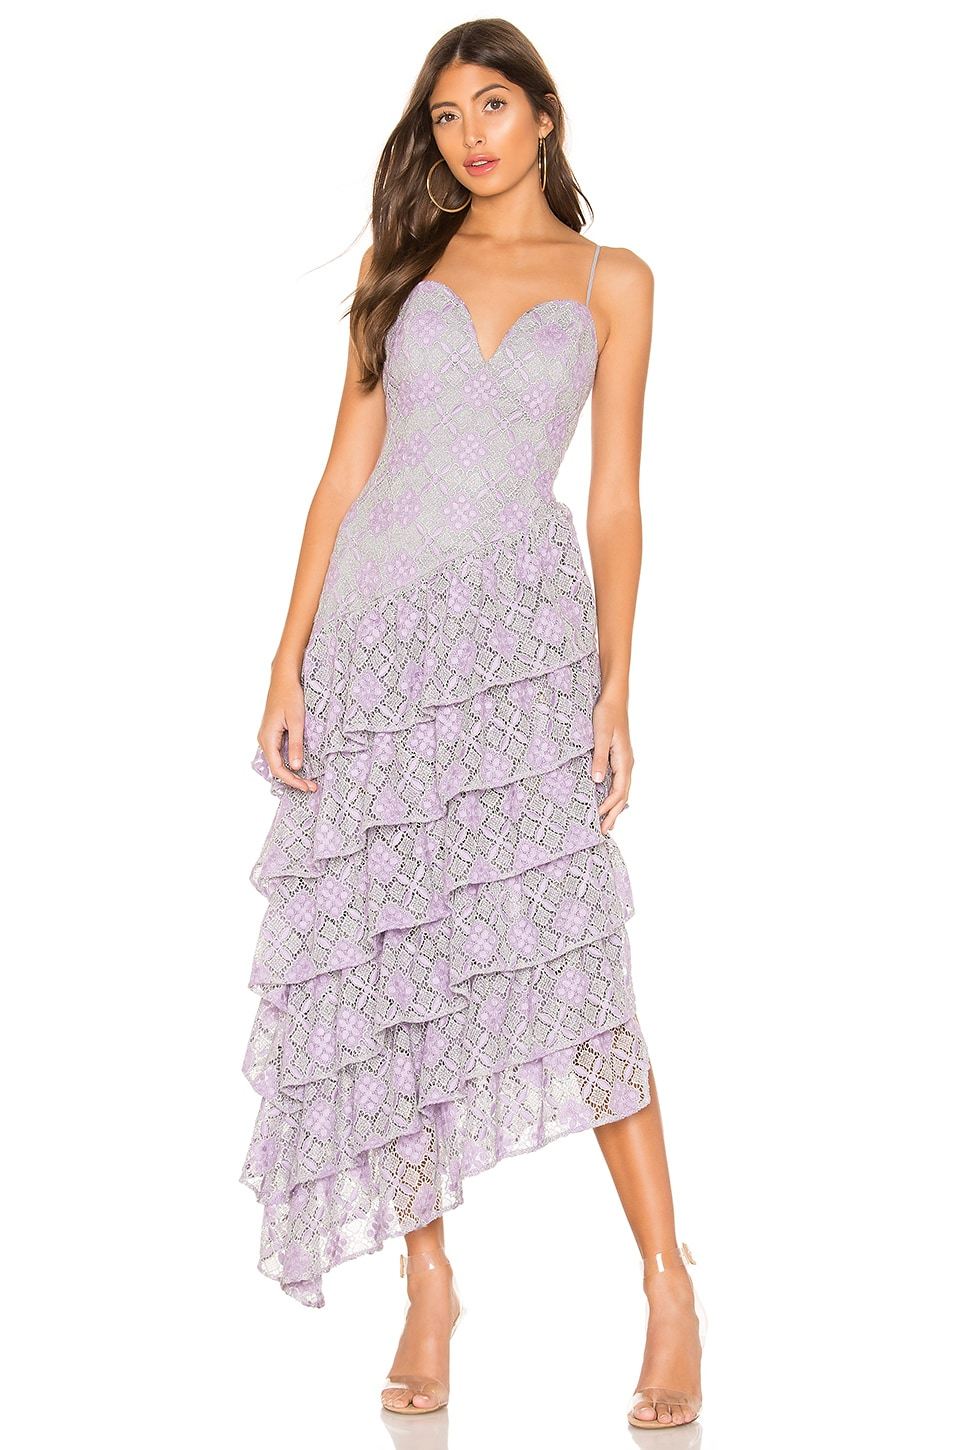 MAJORELLE Oracle Gown in Purple & Silver